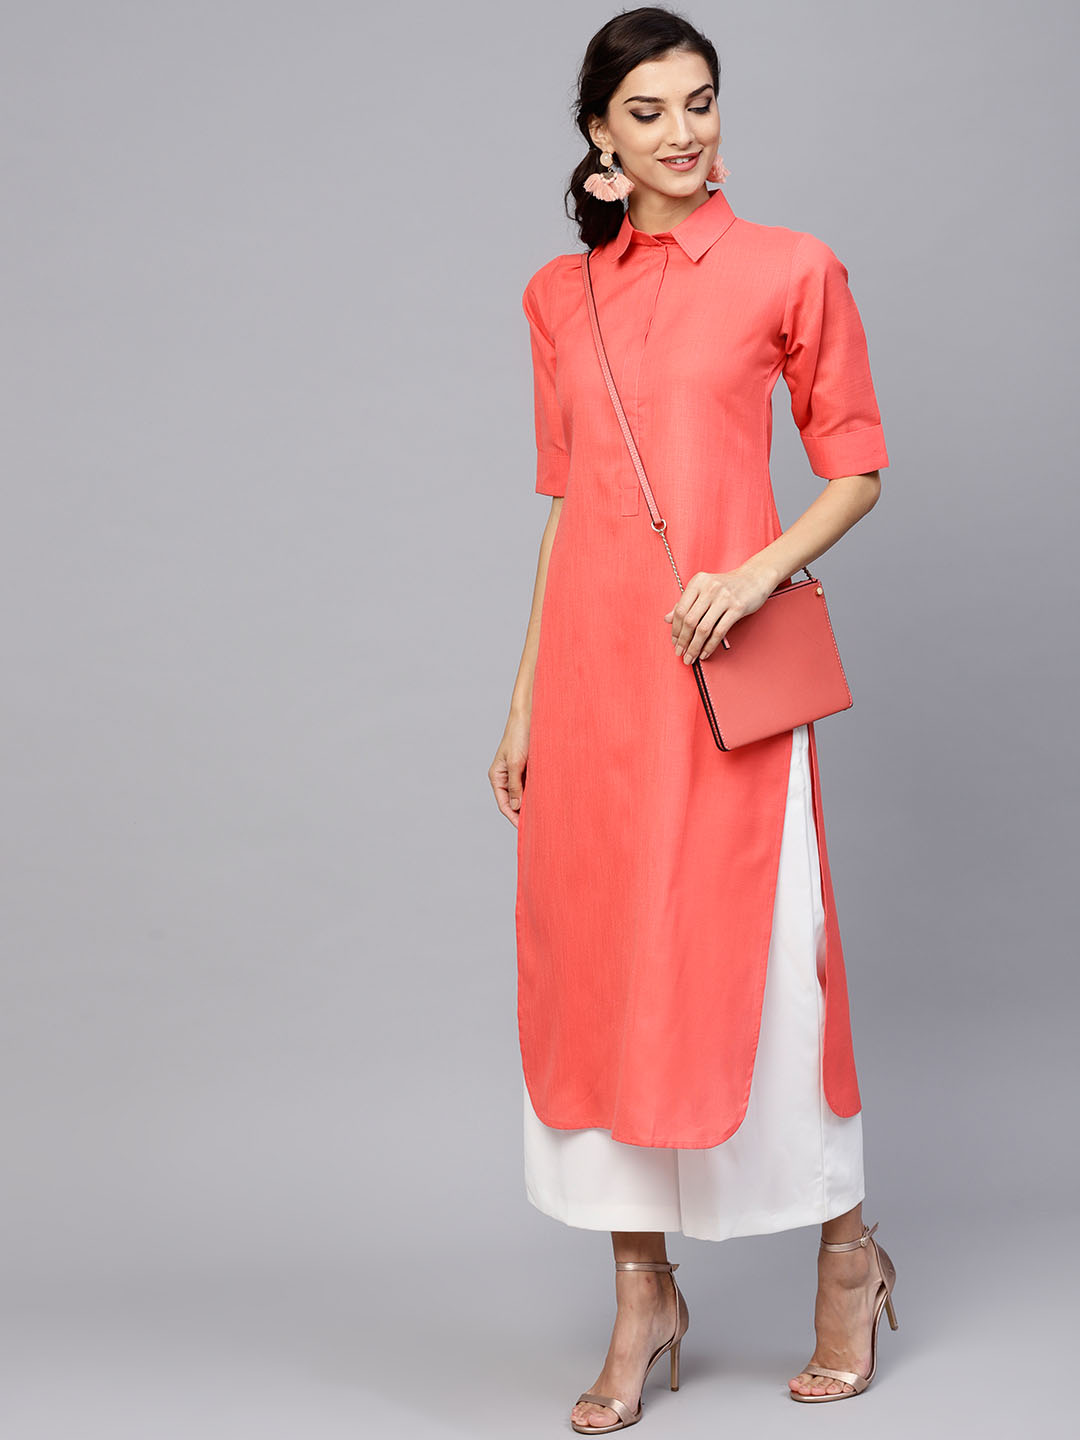 30 Latest Neck Designs For Kurtis To Make You Look Fabulous Popxo